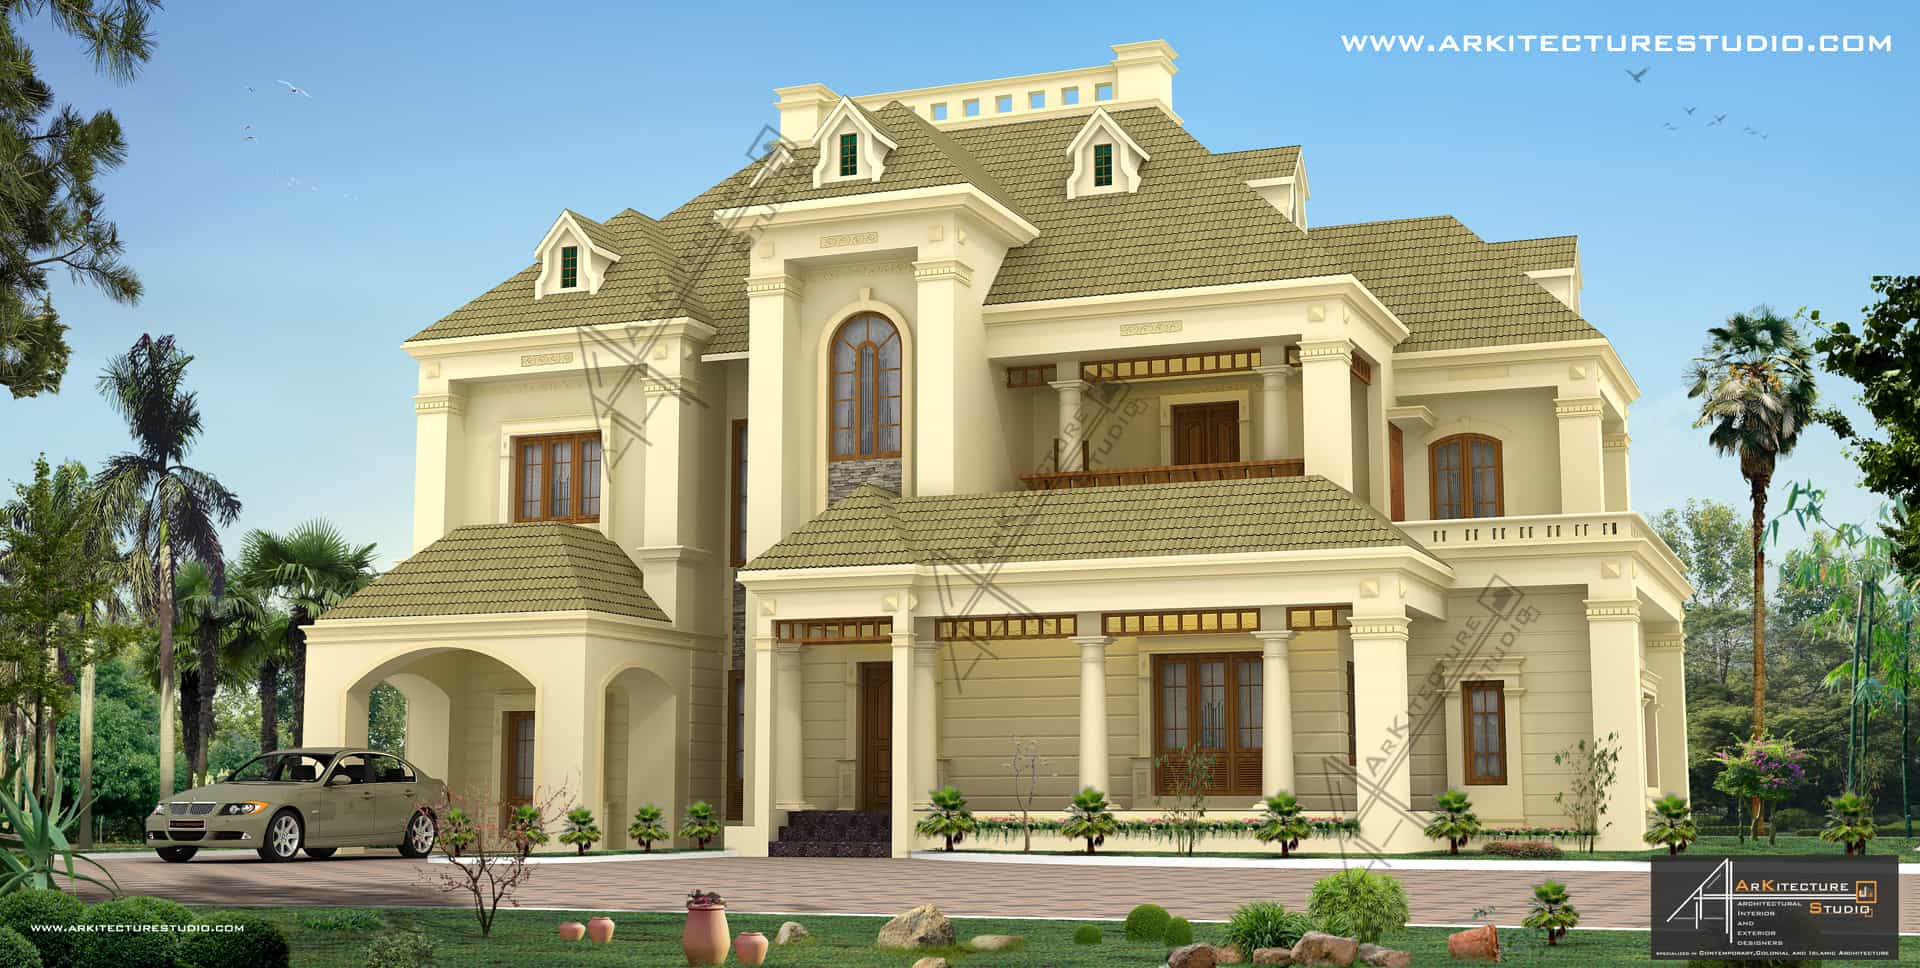 Colonial style house designs in kerala at 3500 sqft 5000 for Design architecture house